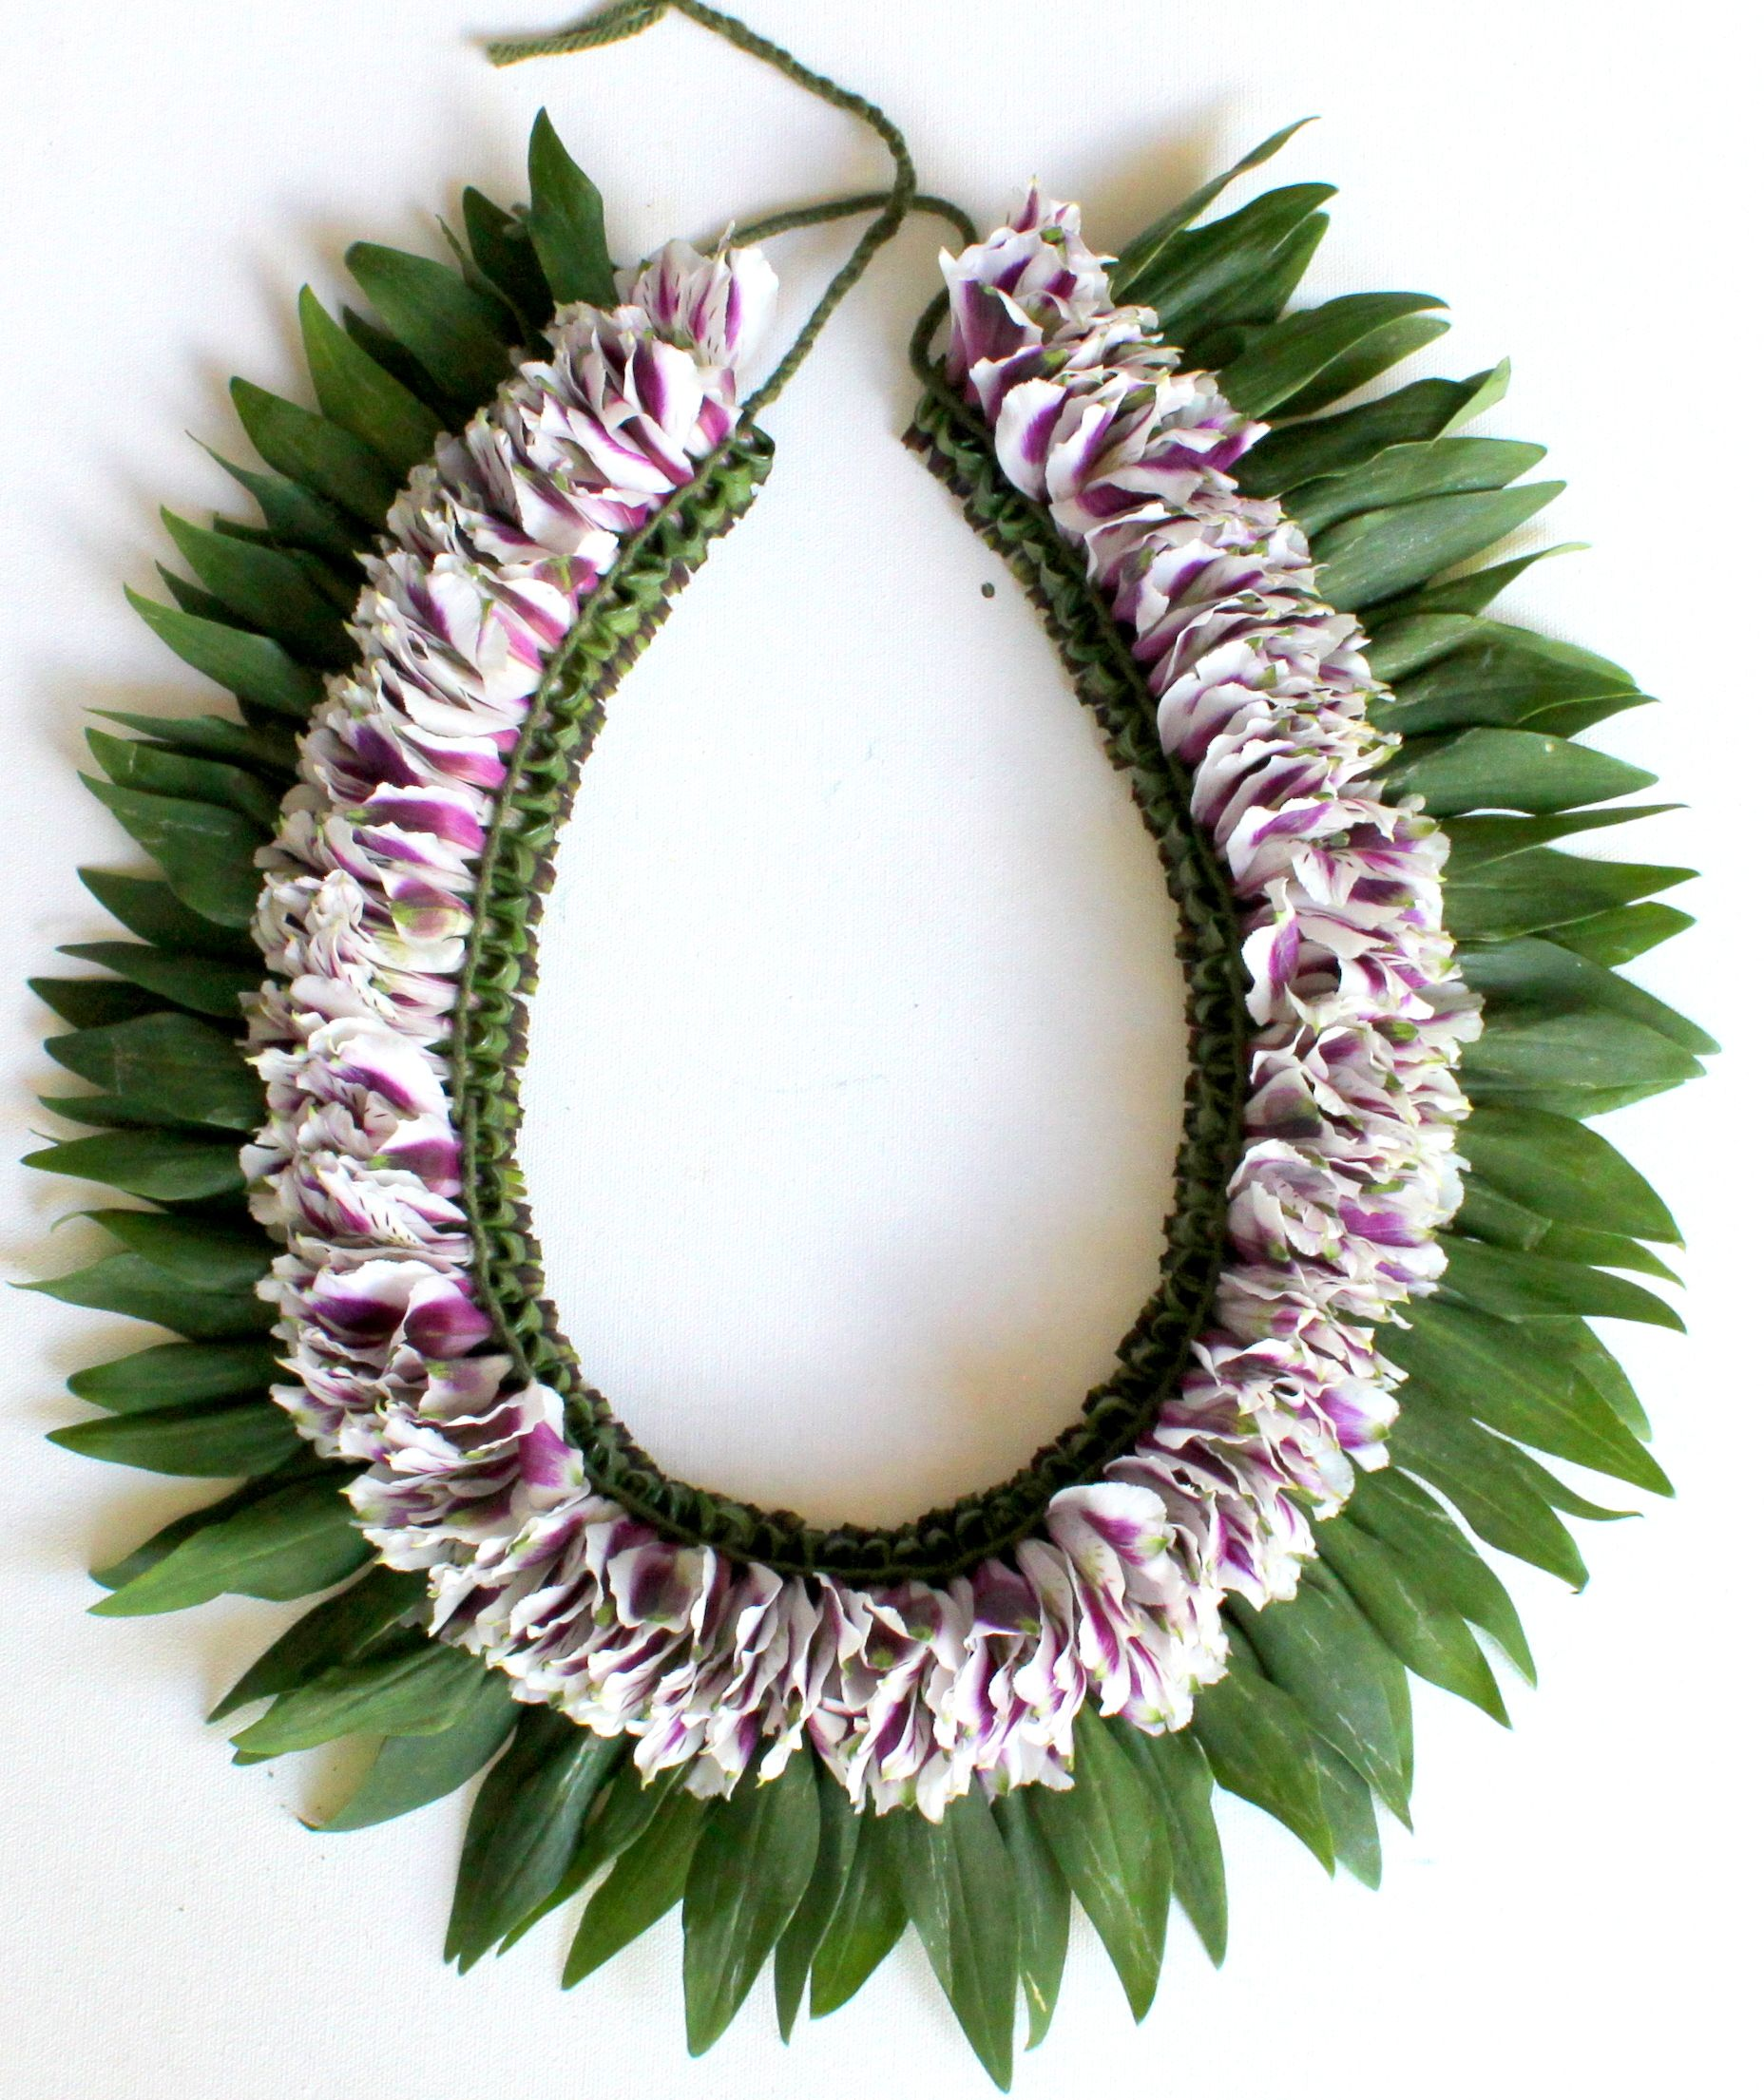 Fresh flower bicolor white and purple lei leis pinterest leis fresh flower bicolor white and purple lei hawaiian leis hawaiian flowers hawaiian plants izmirmasajfo